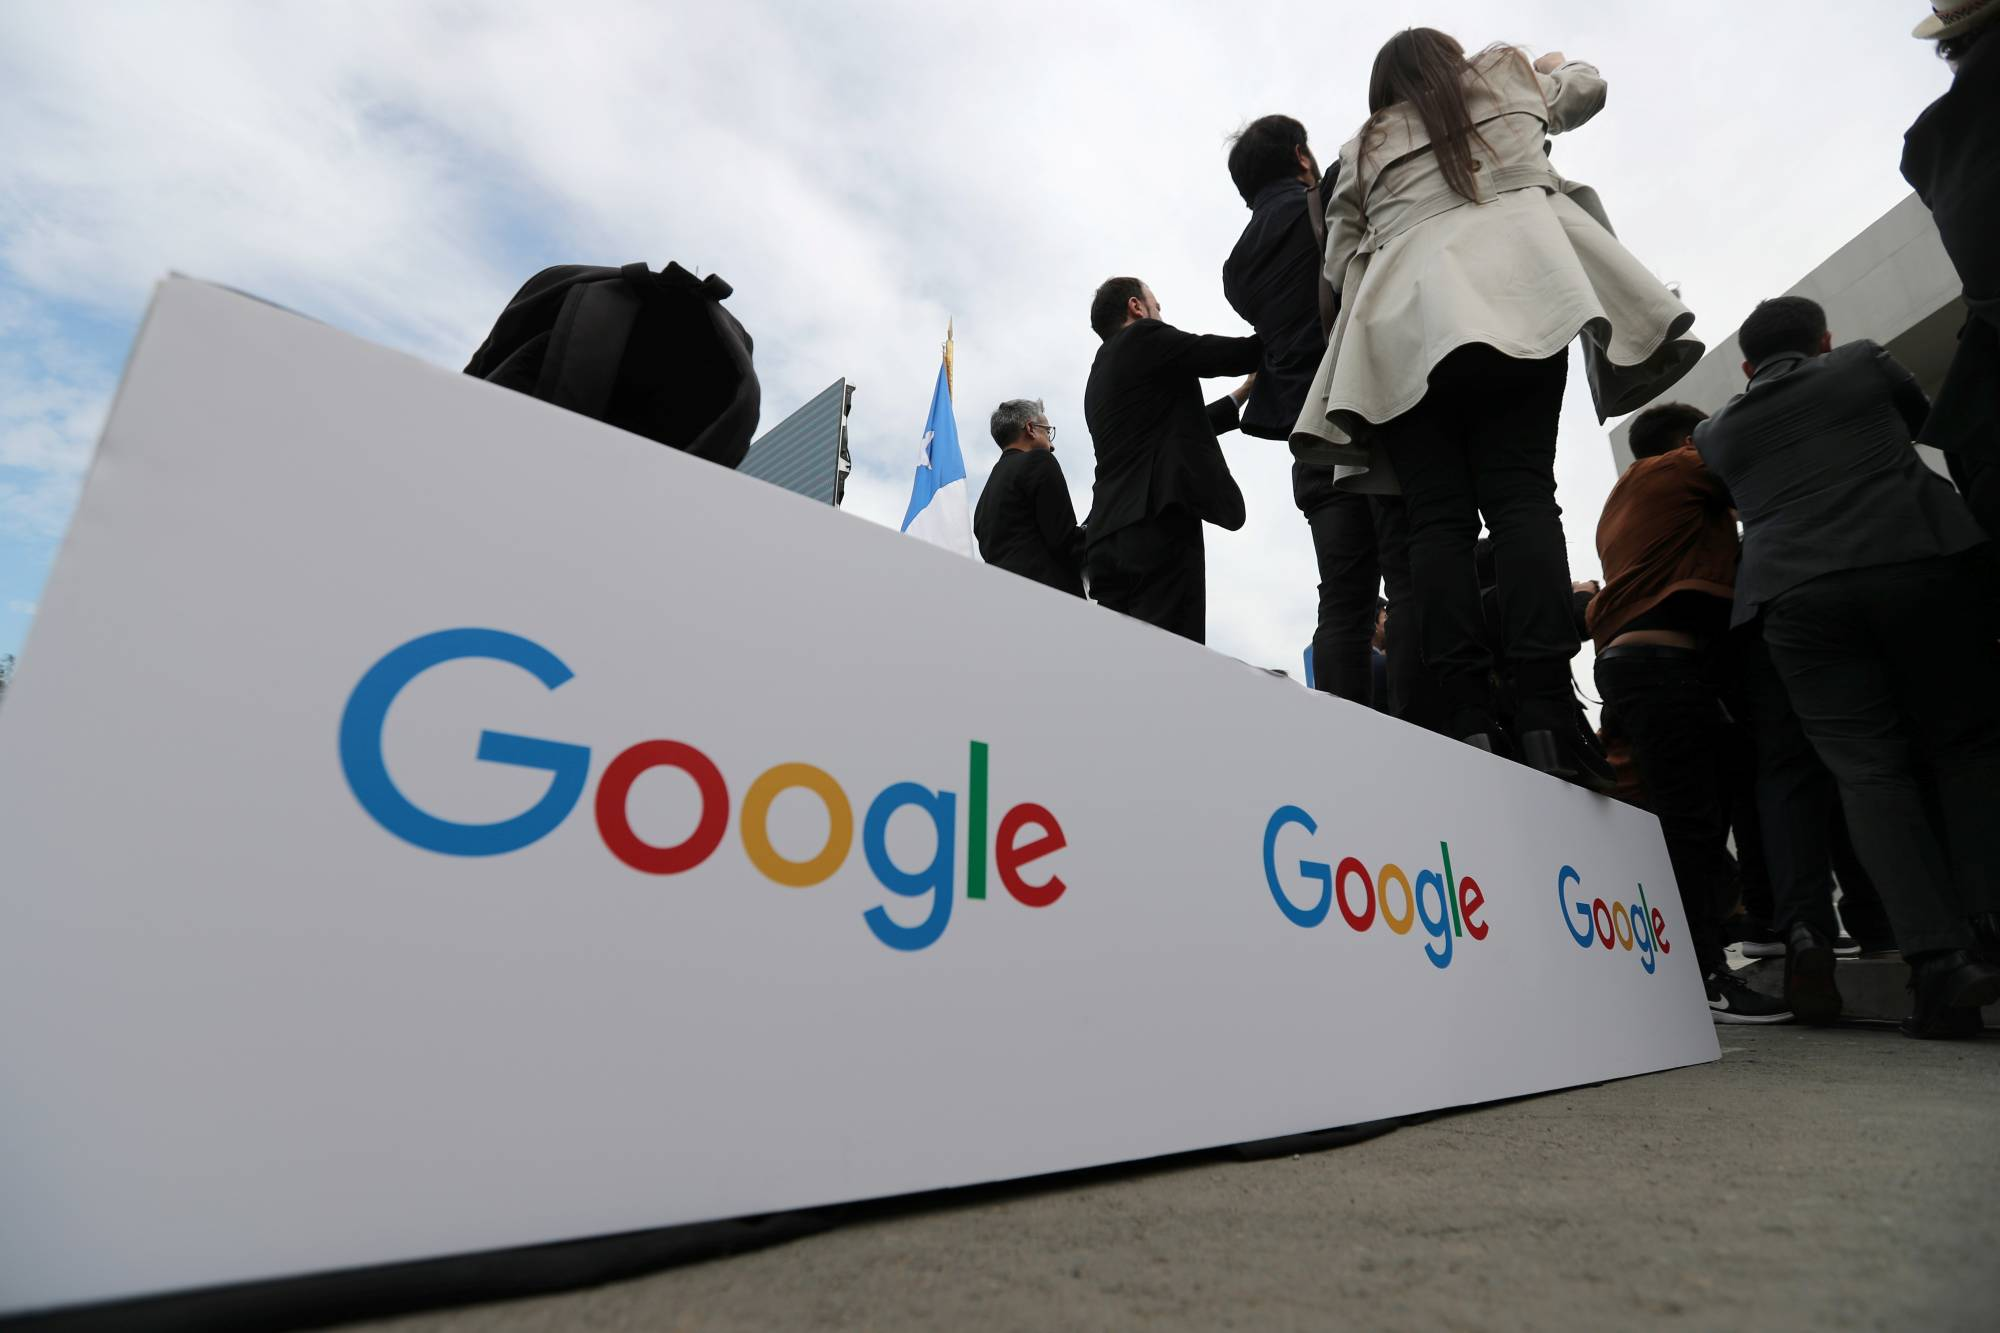 Guests stand on a podium with the Google logo during the announcement of the plans for their data centre expansion in Santiago